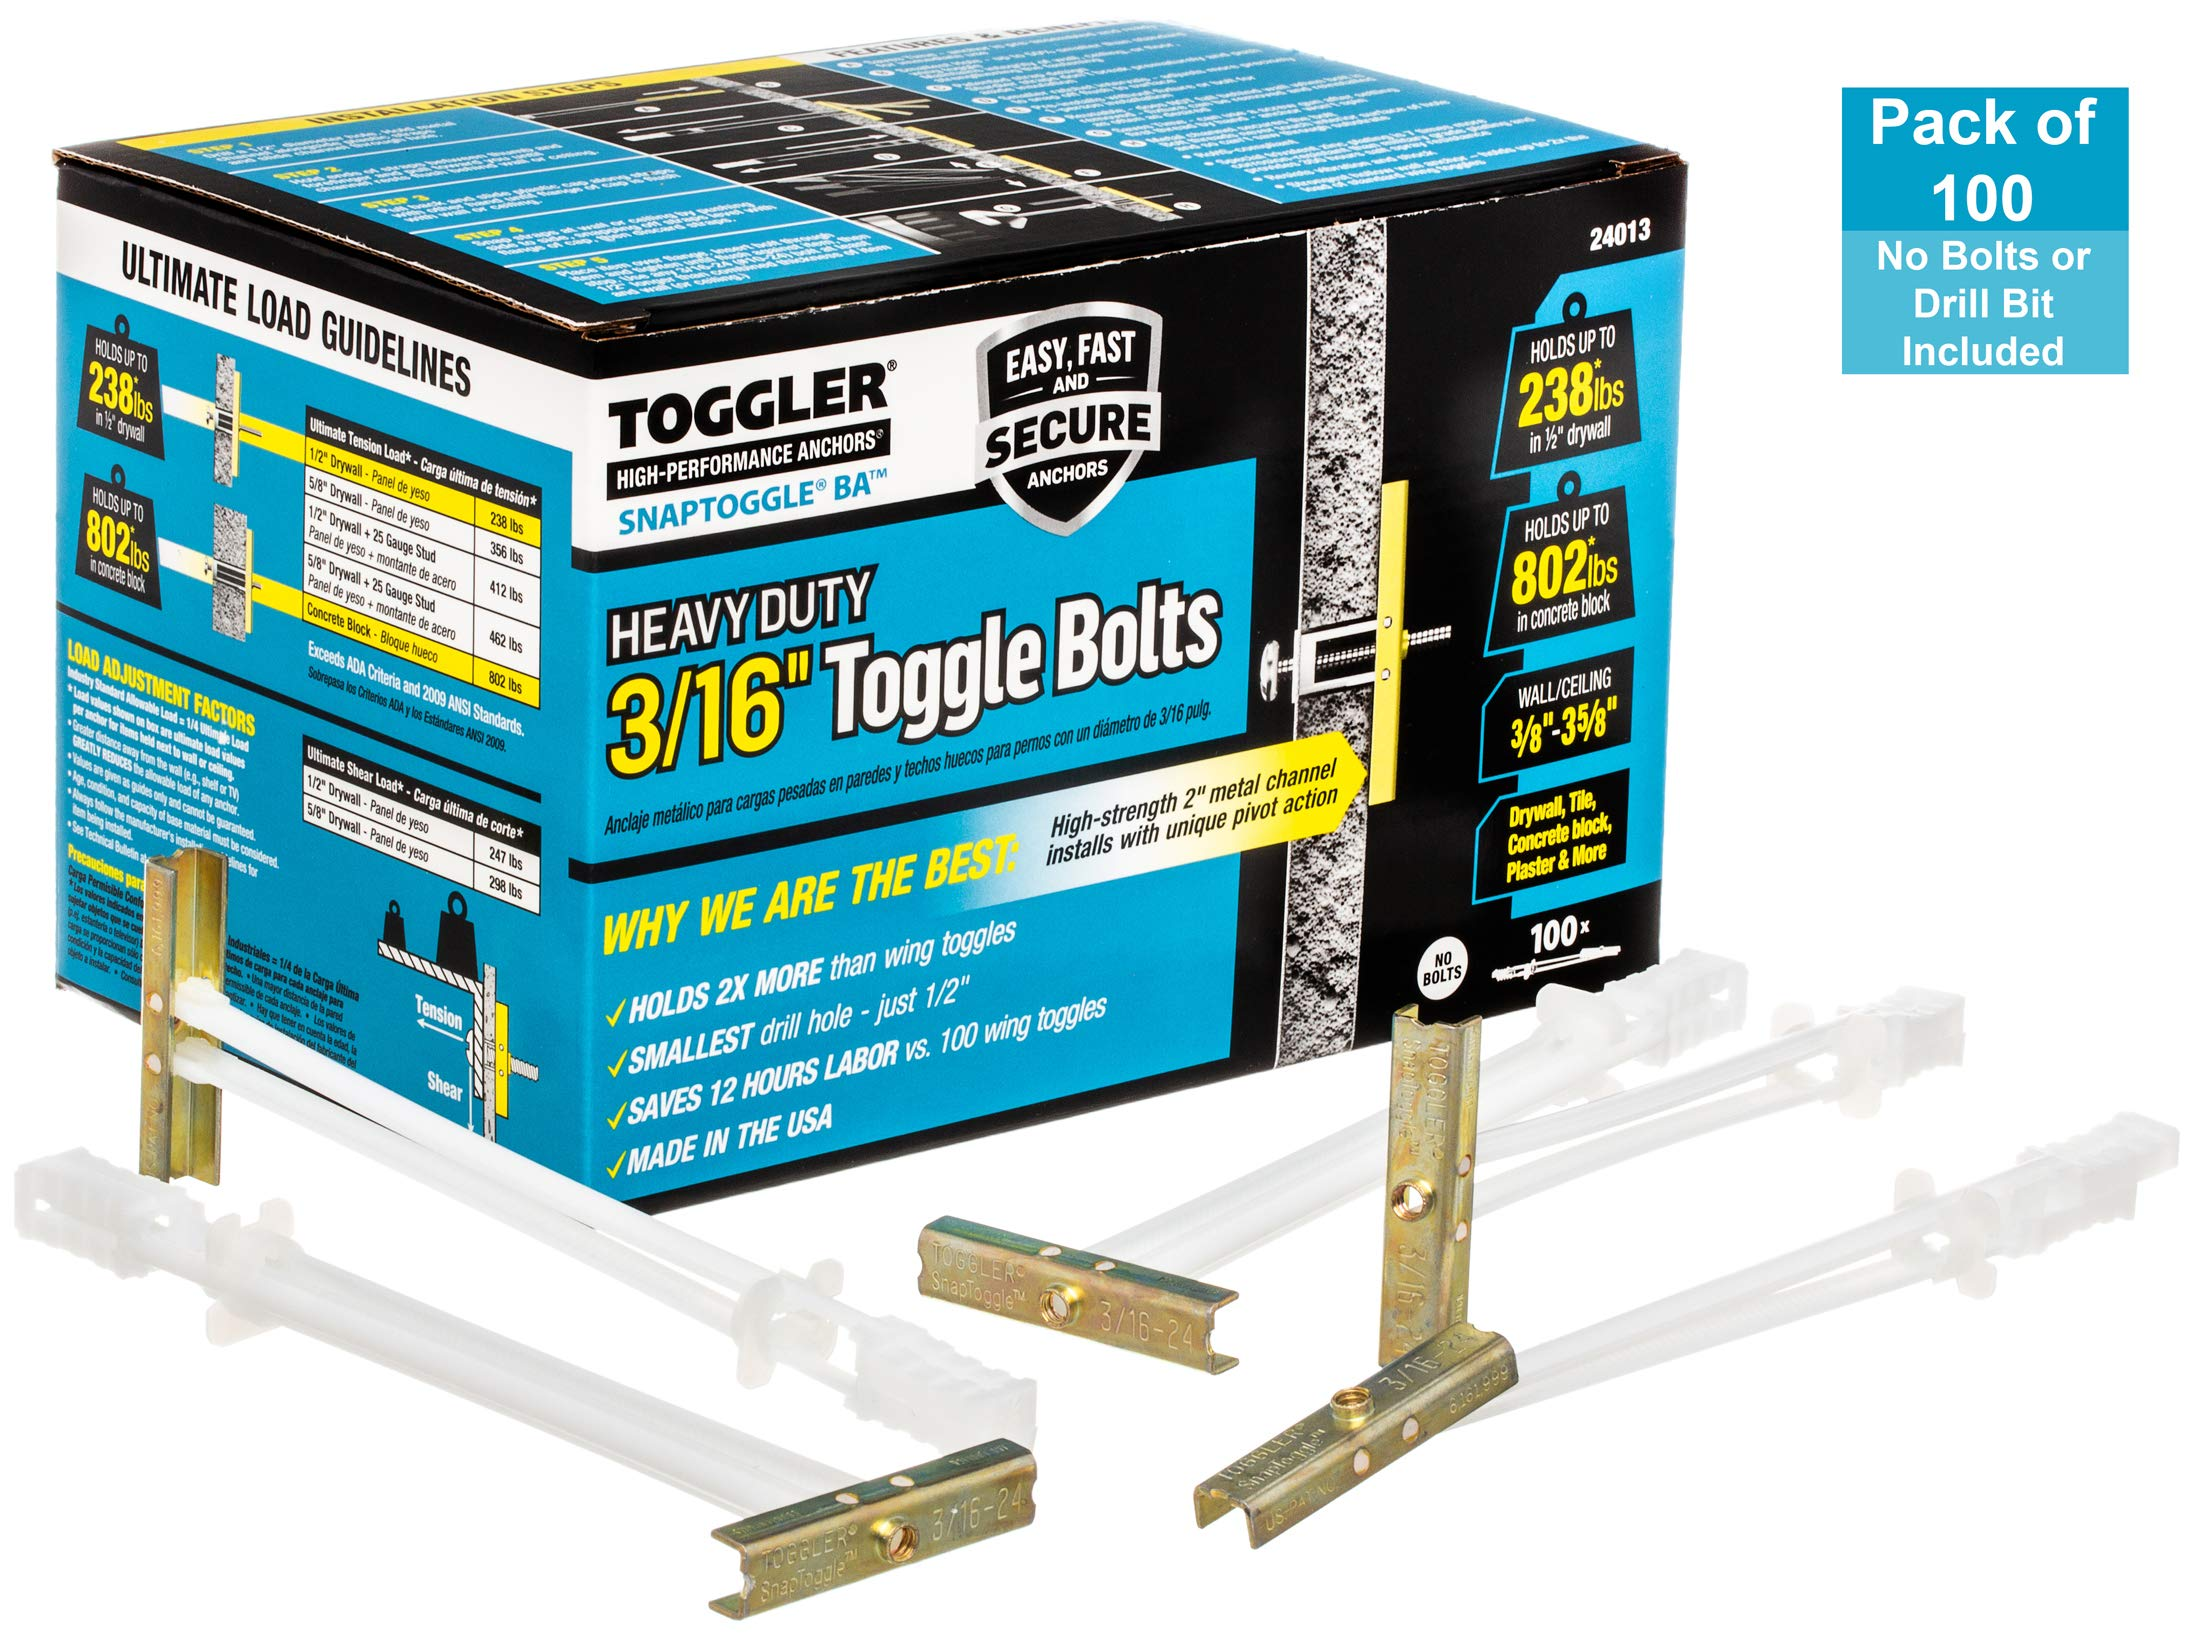 TOGGLER SNAPTOGGLE BA Toggle Anchor, Zinc-Plated Steel Channel, Made in US, 3/8'' to 3-5/8'' Grip Range, for 3/16''-24 UNC Fastener Size (1 Pack of 100) by TOGGLER